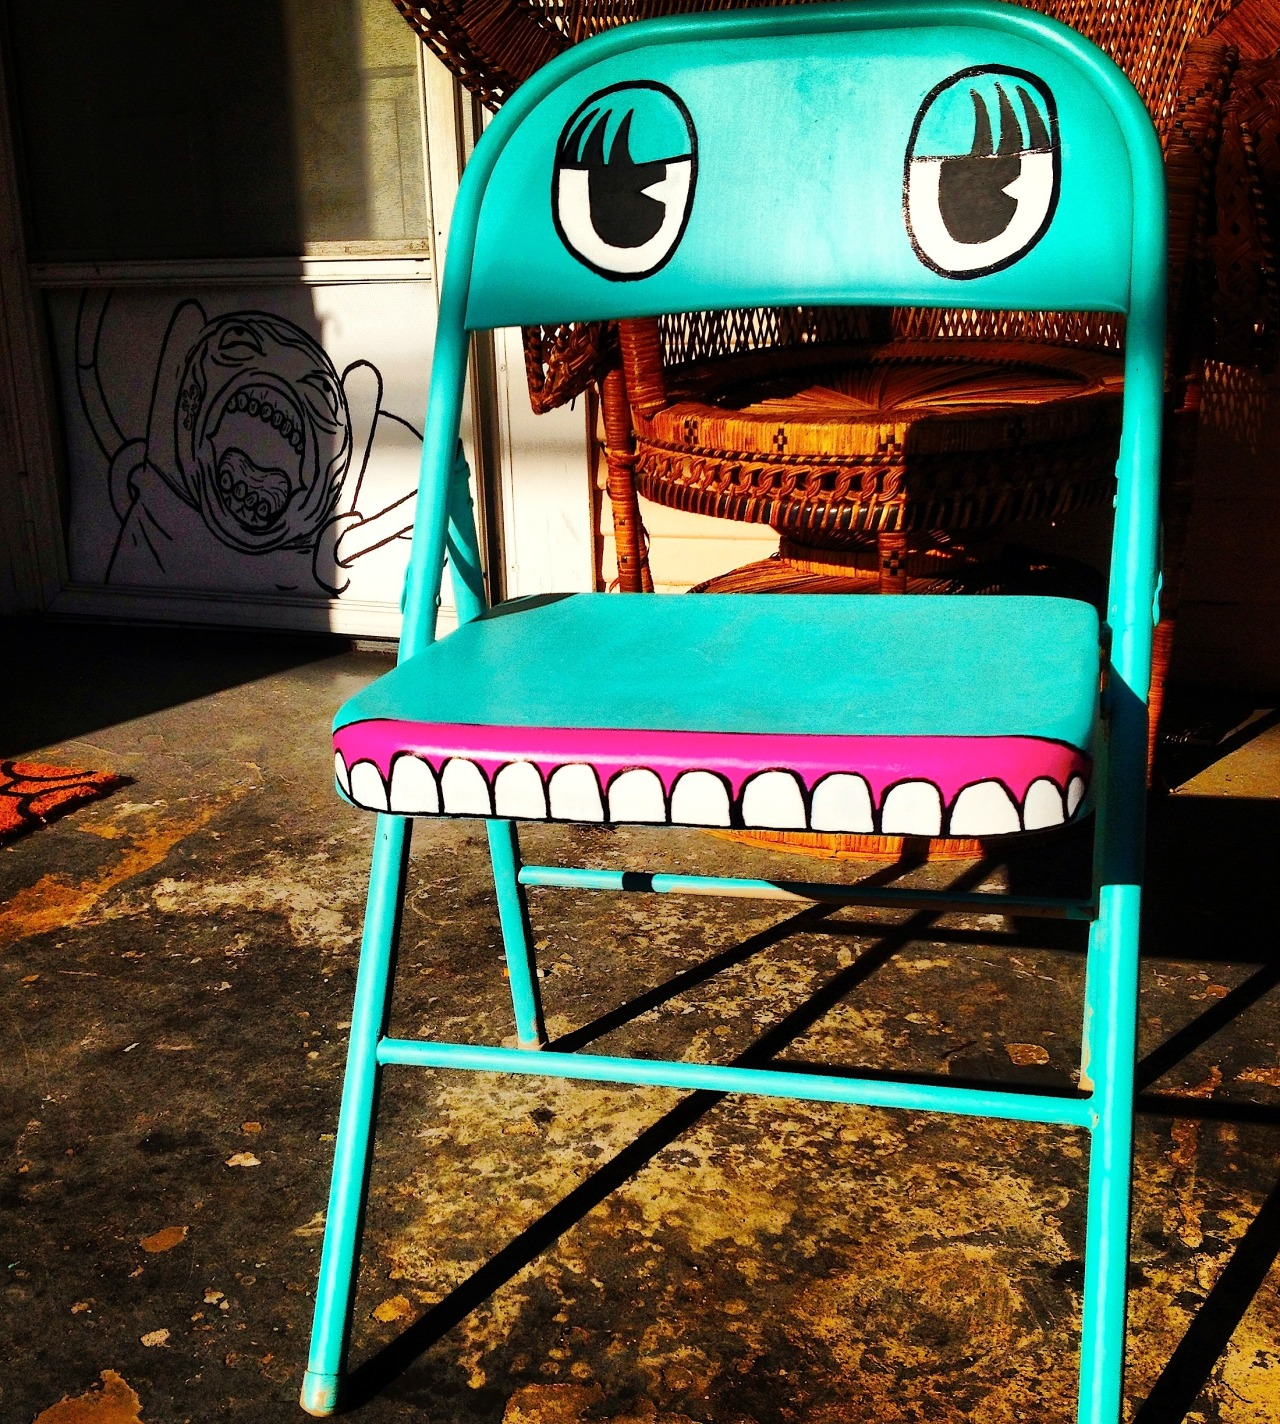 unfortunateface:  Acrylic on antique metal chair